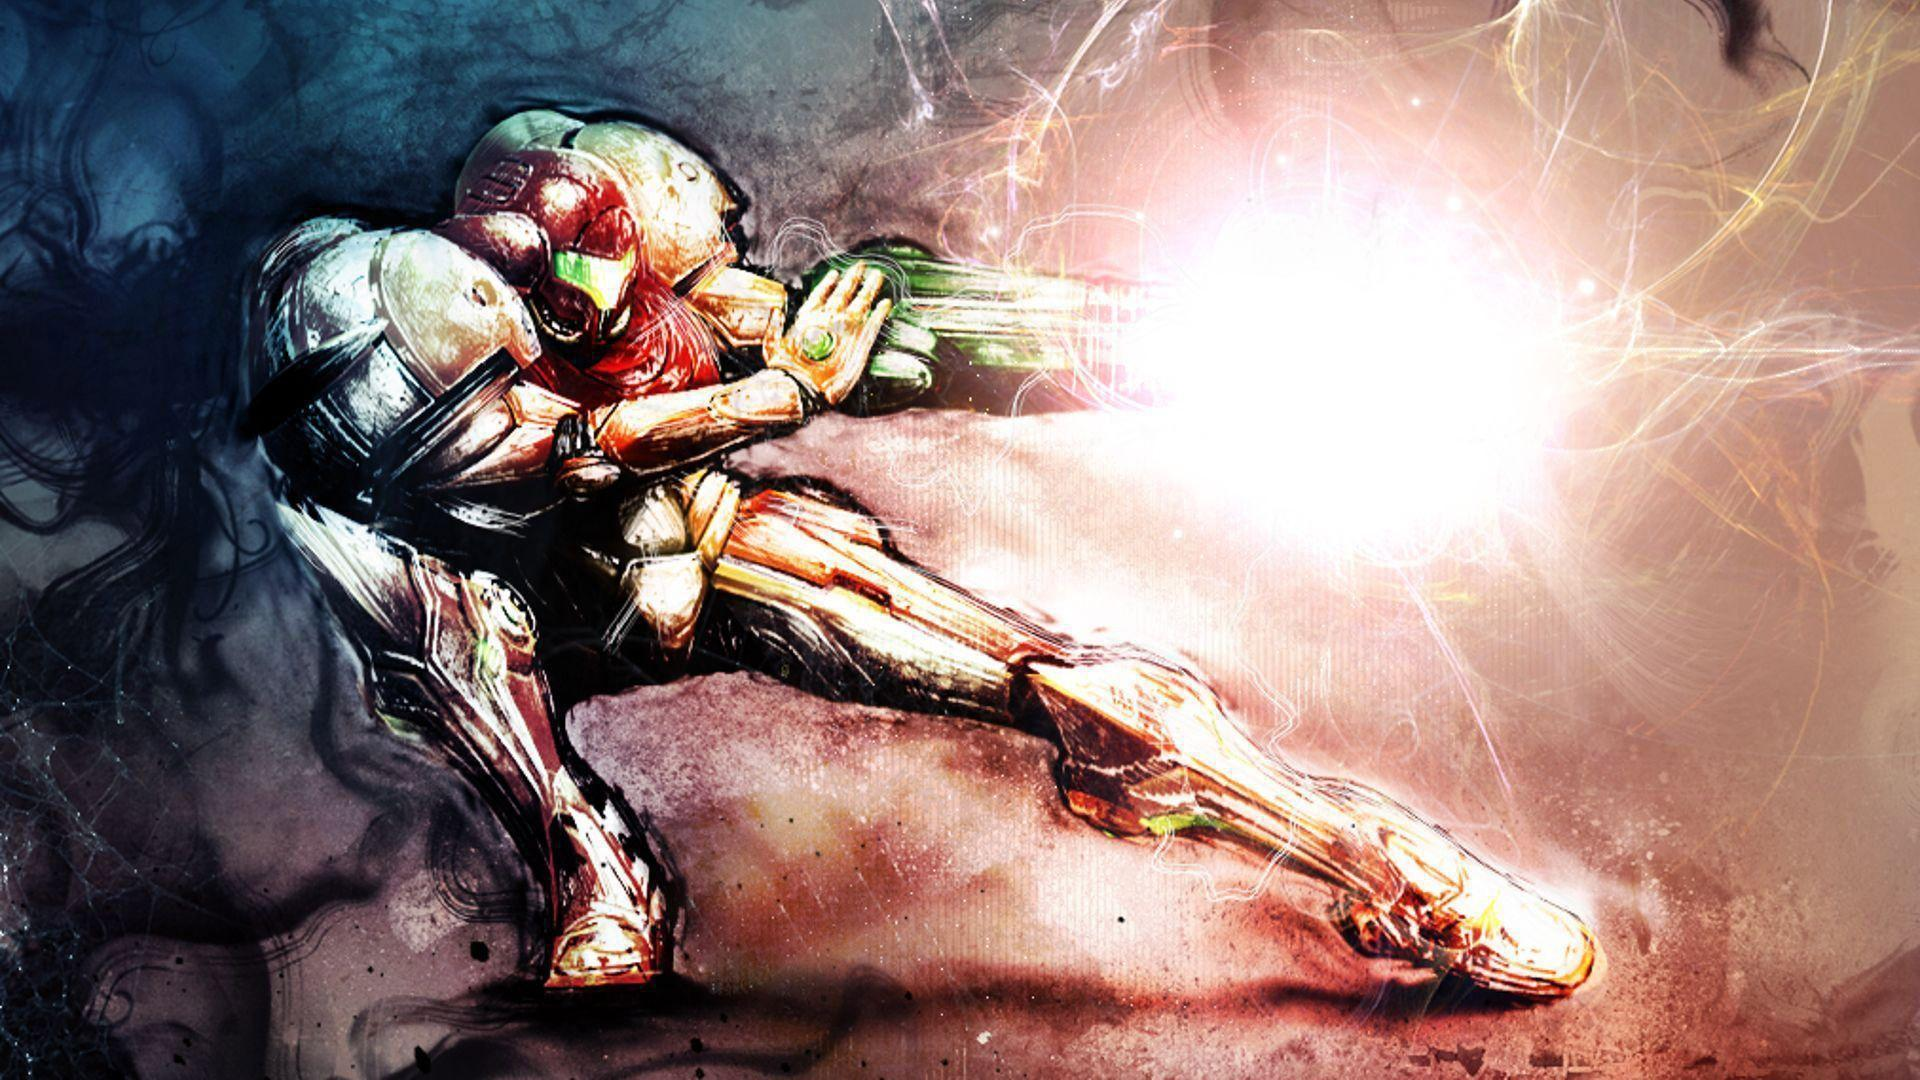 Samus Aran Wallpapers Album on